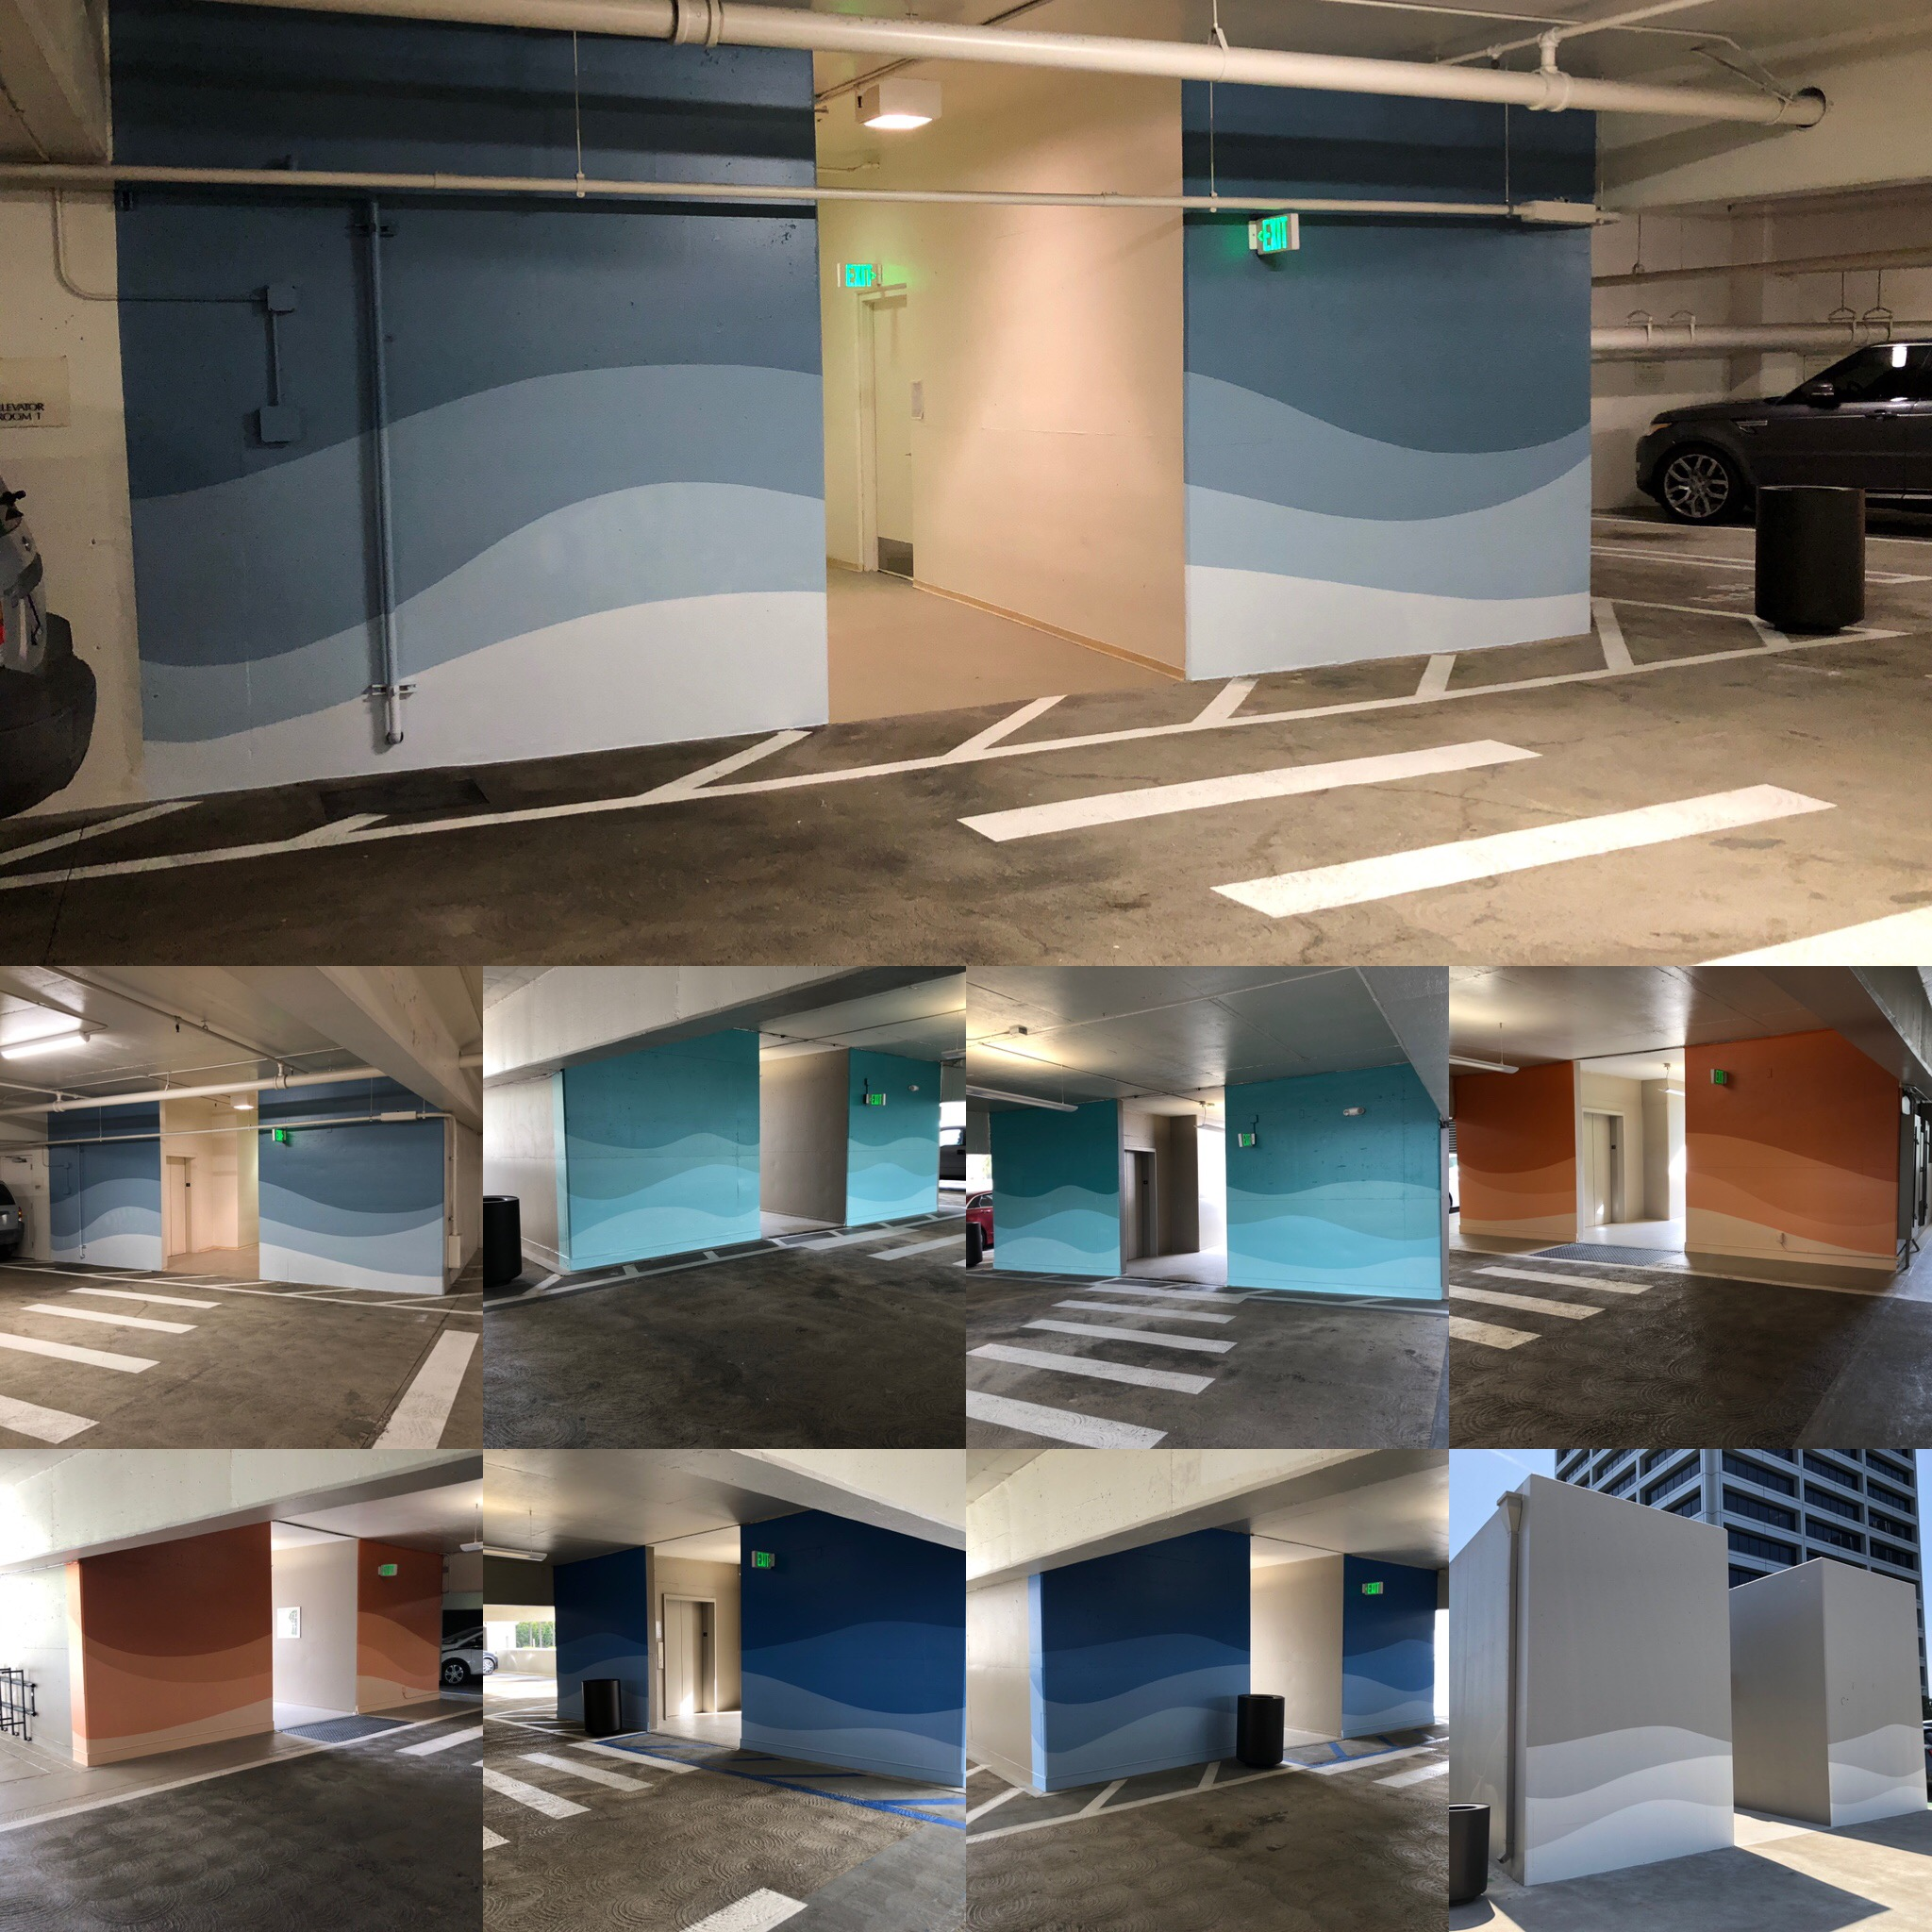 Hand painted graphics parking structure way finding Newport Beach Orange County